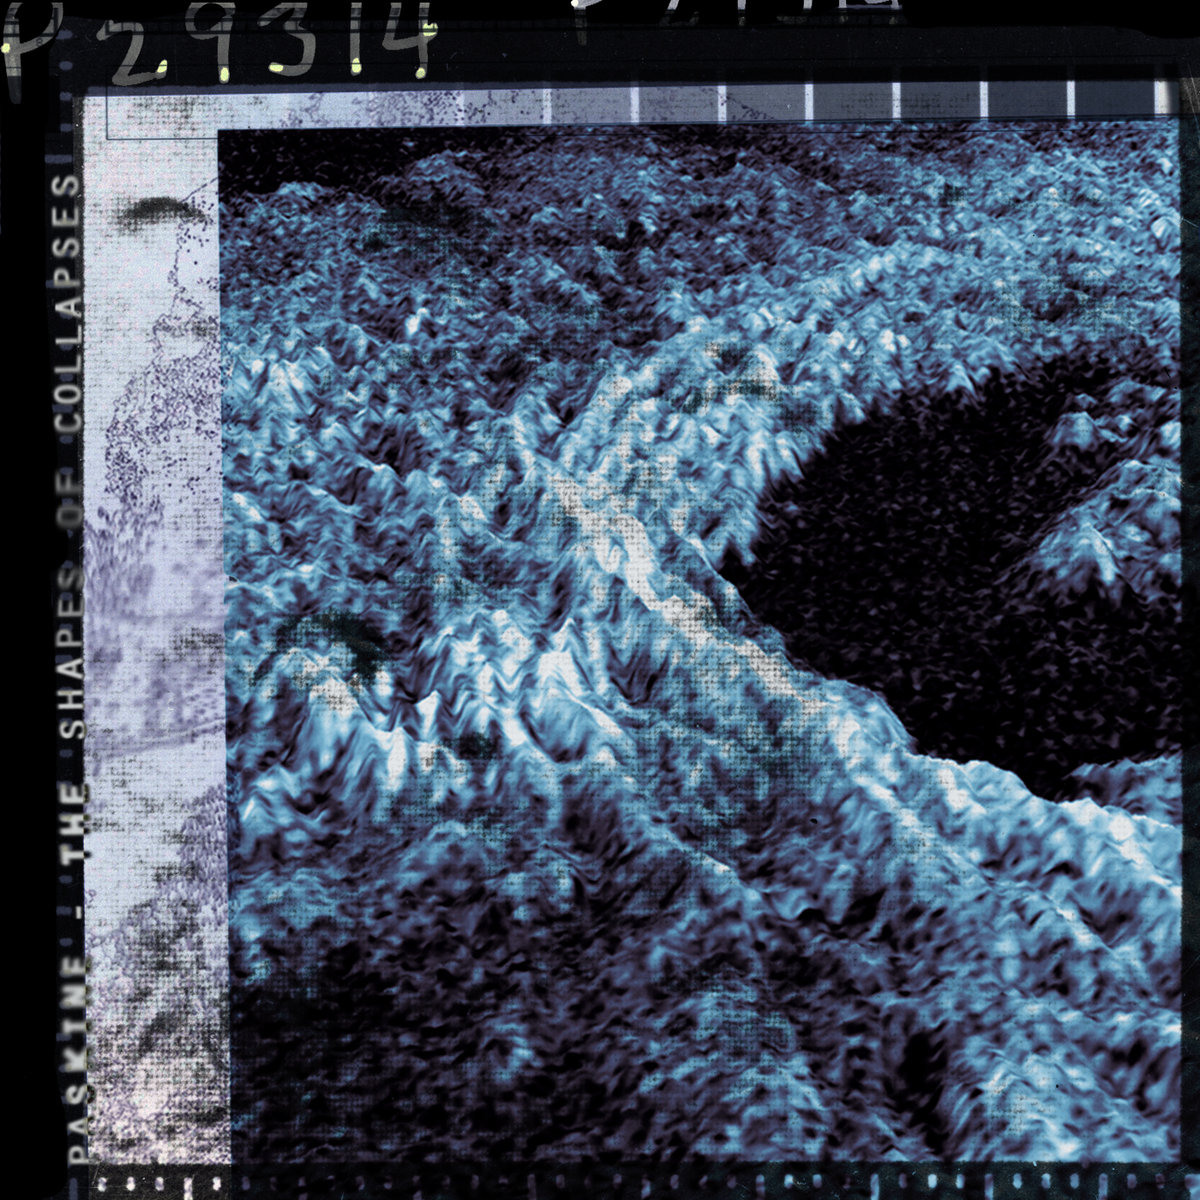 VoxxoV Records' new release is a CD Album 'THE SHAPES OF COLLAPSES' by Paskine